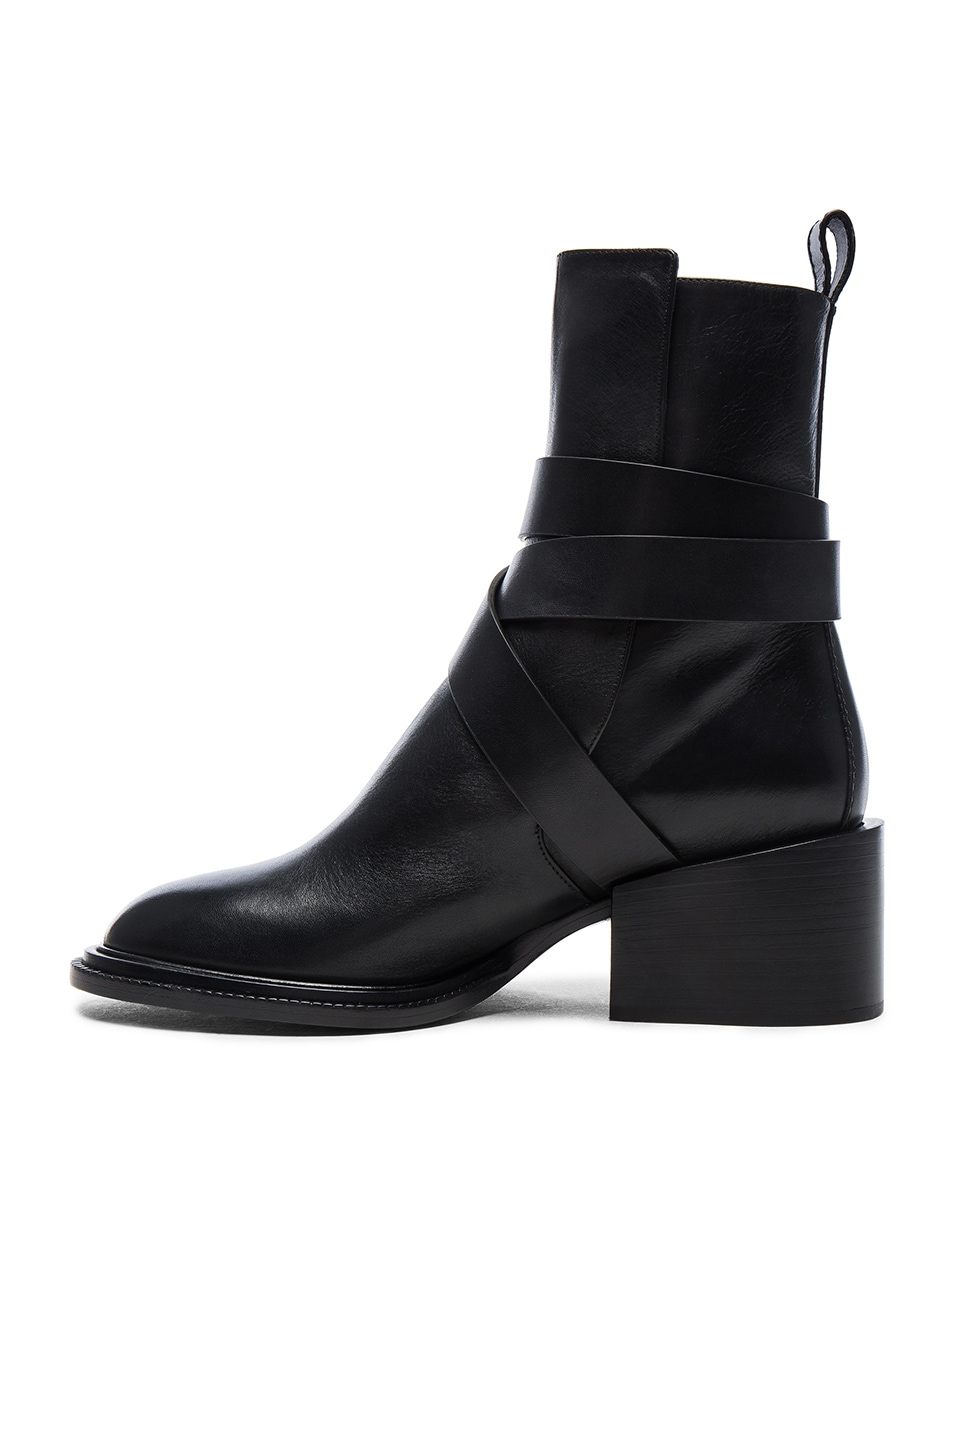 Image 5 of Jil Sander Leather Boots in Black